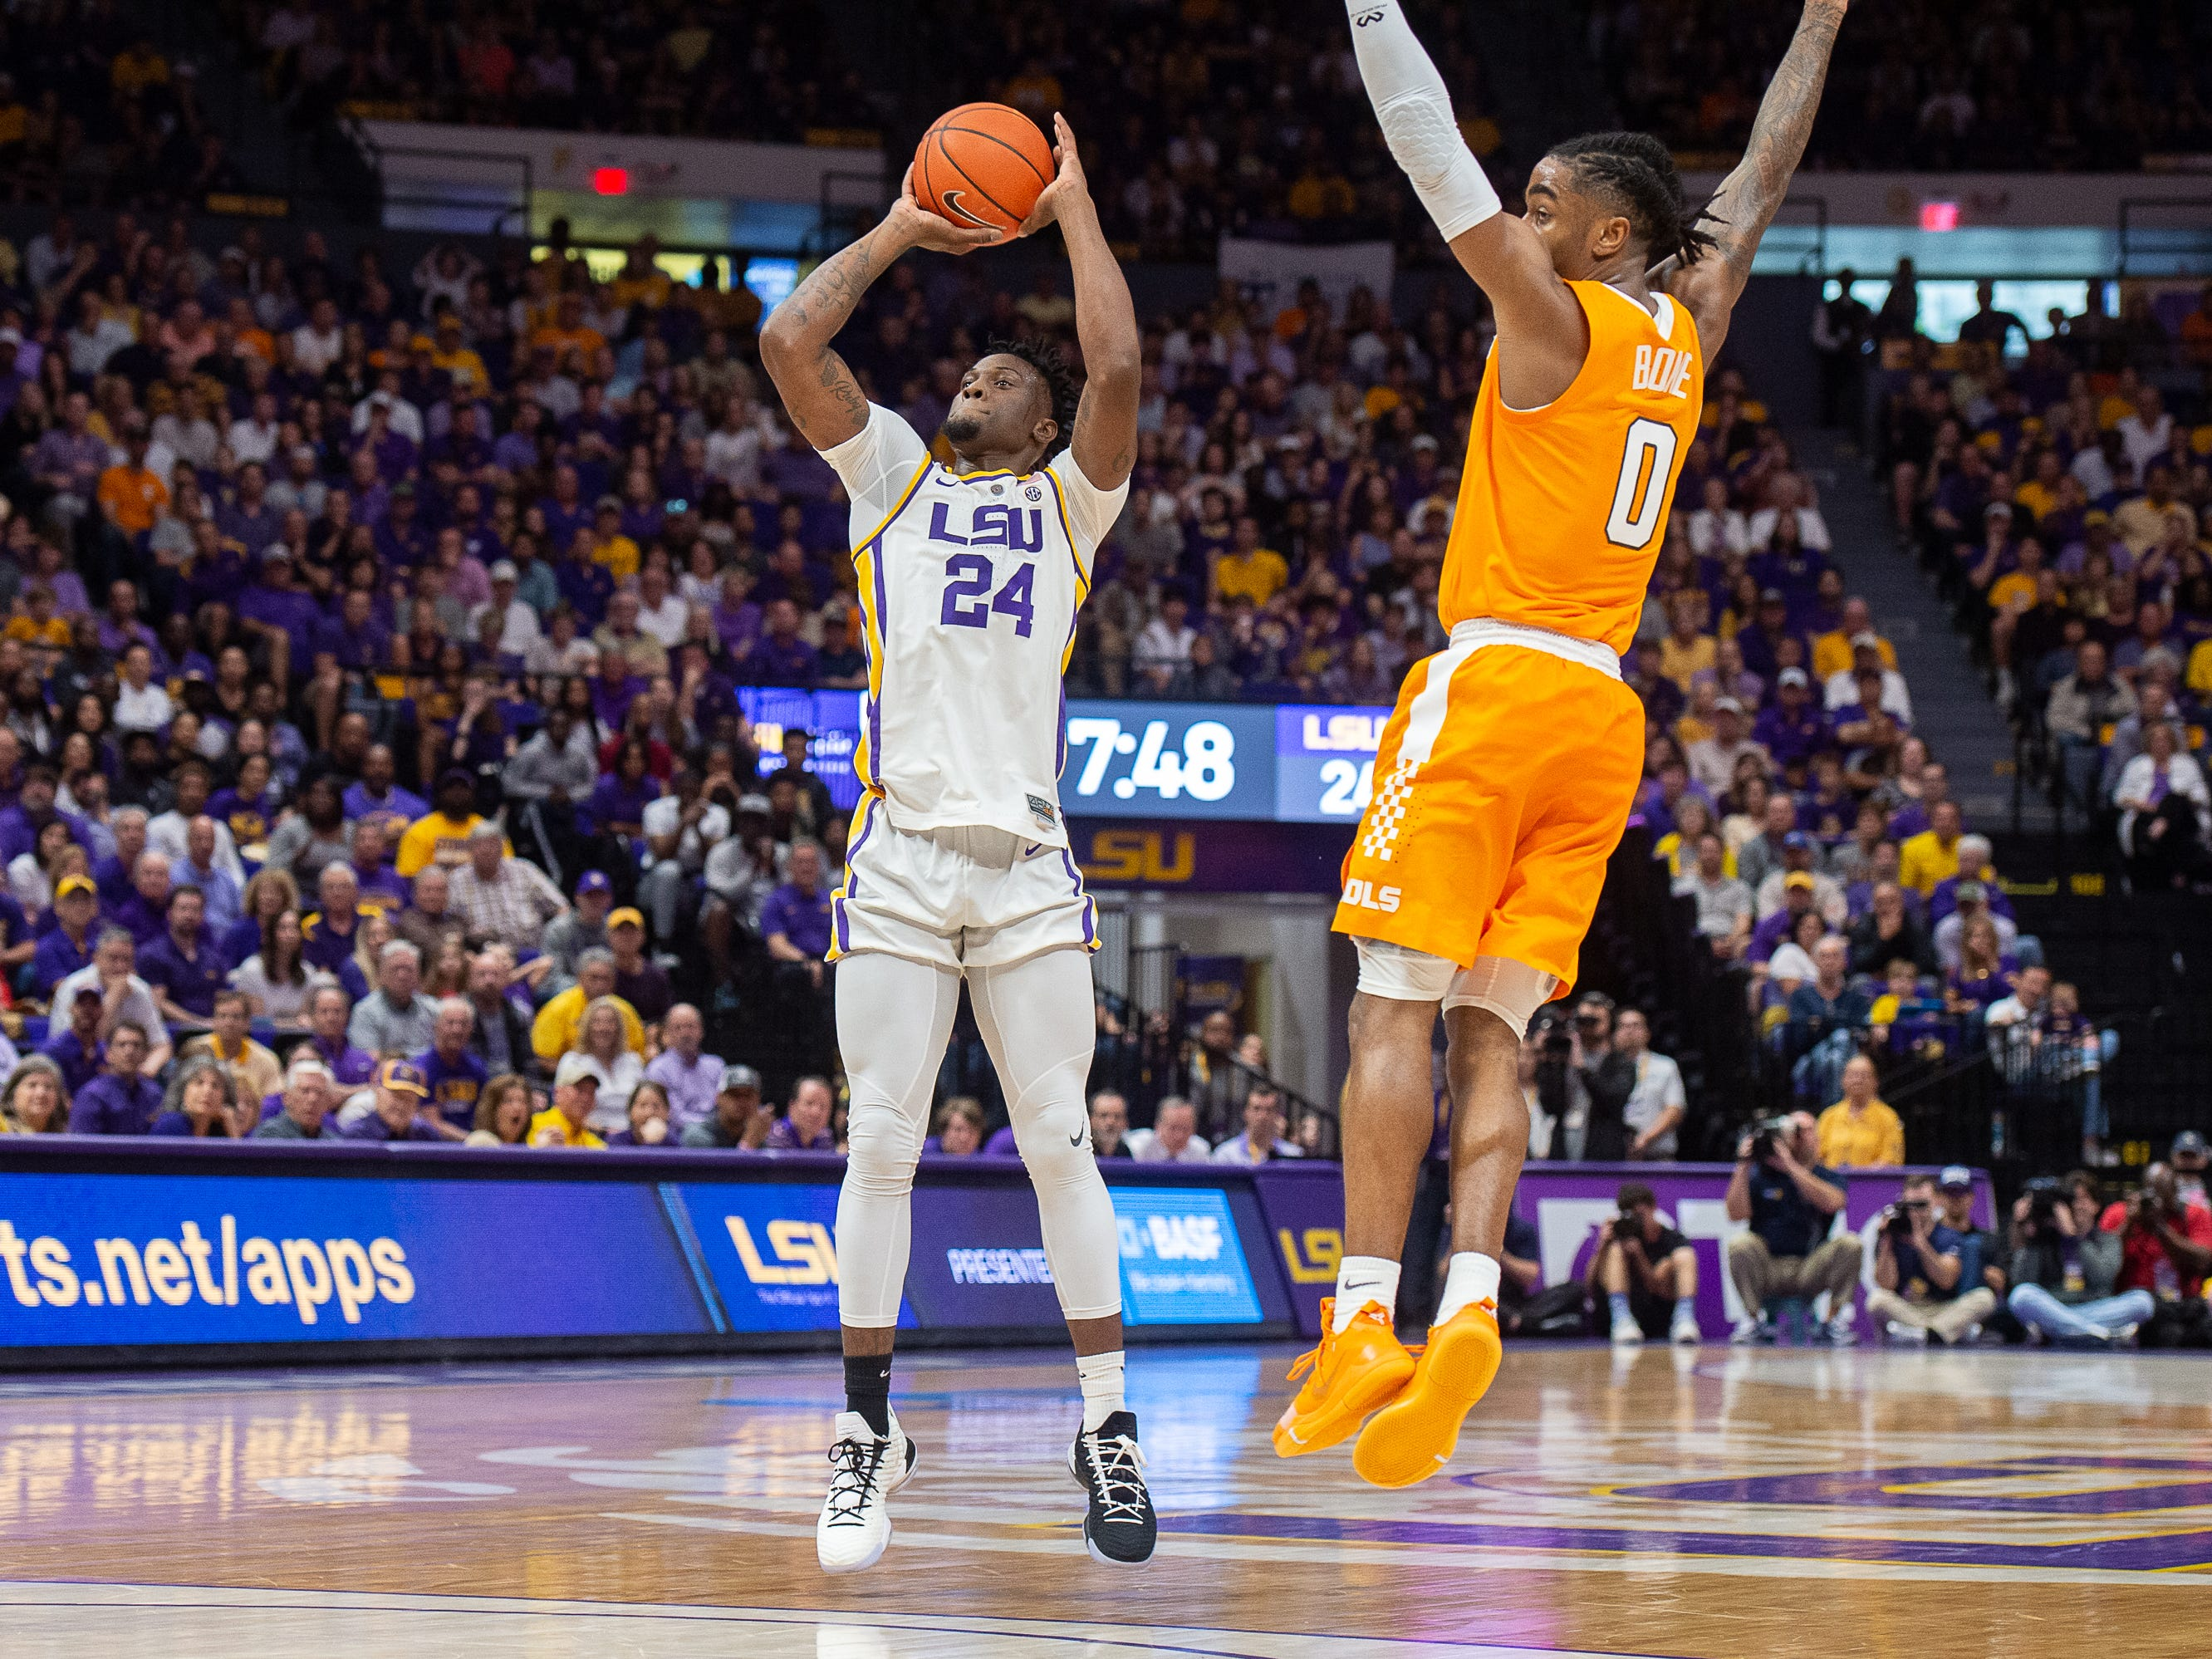 Emmitt Williams takes a shot as the LSU Fighting Tigers take on the Tennessee Volunteers at the Pete Marovich Assembly Center. Saturday, Feb. 23, 2019.